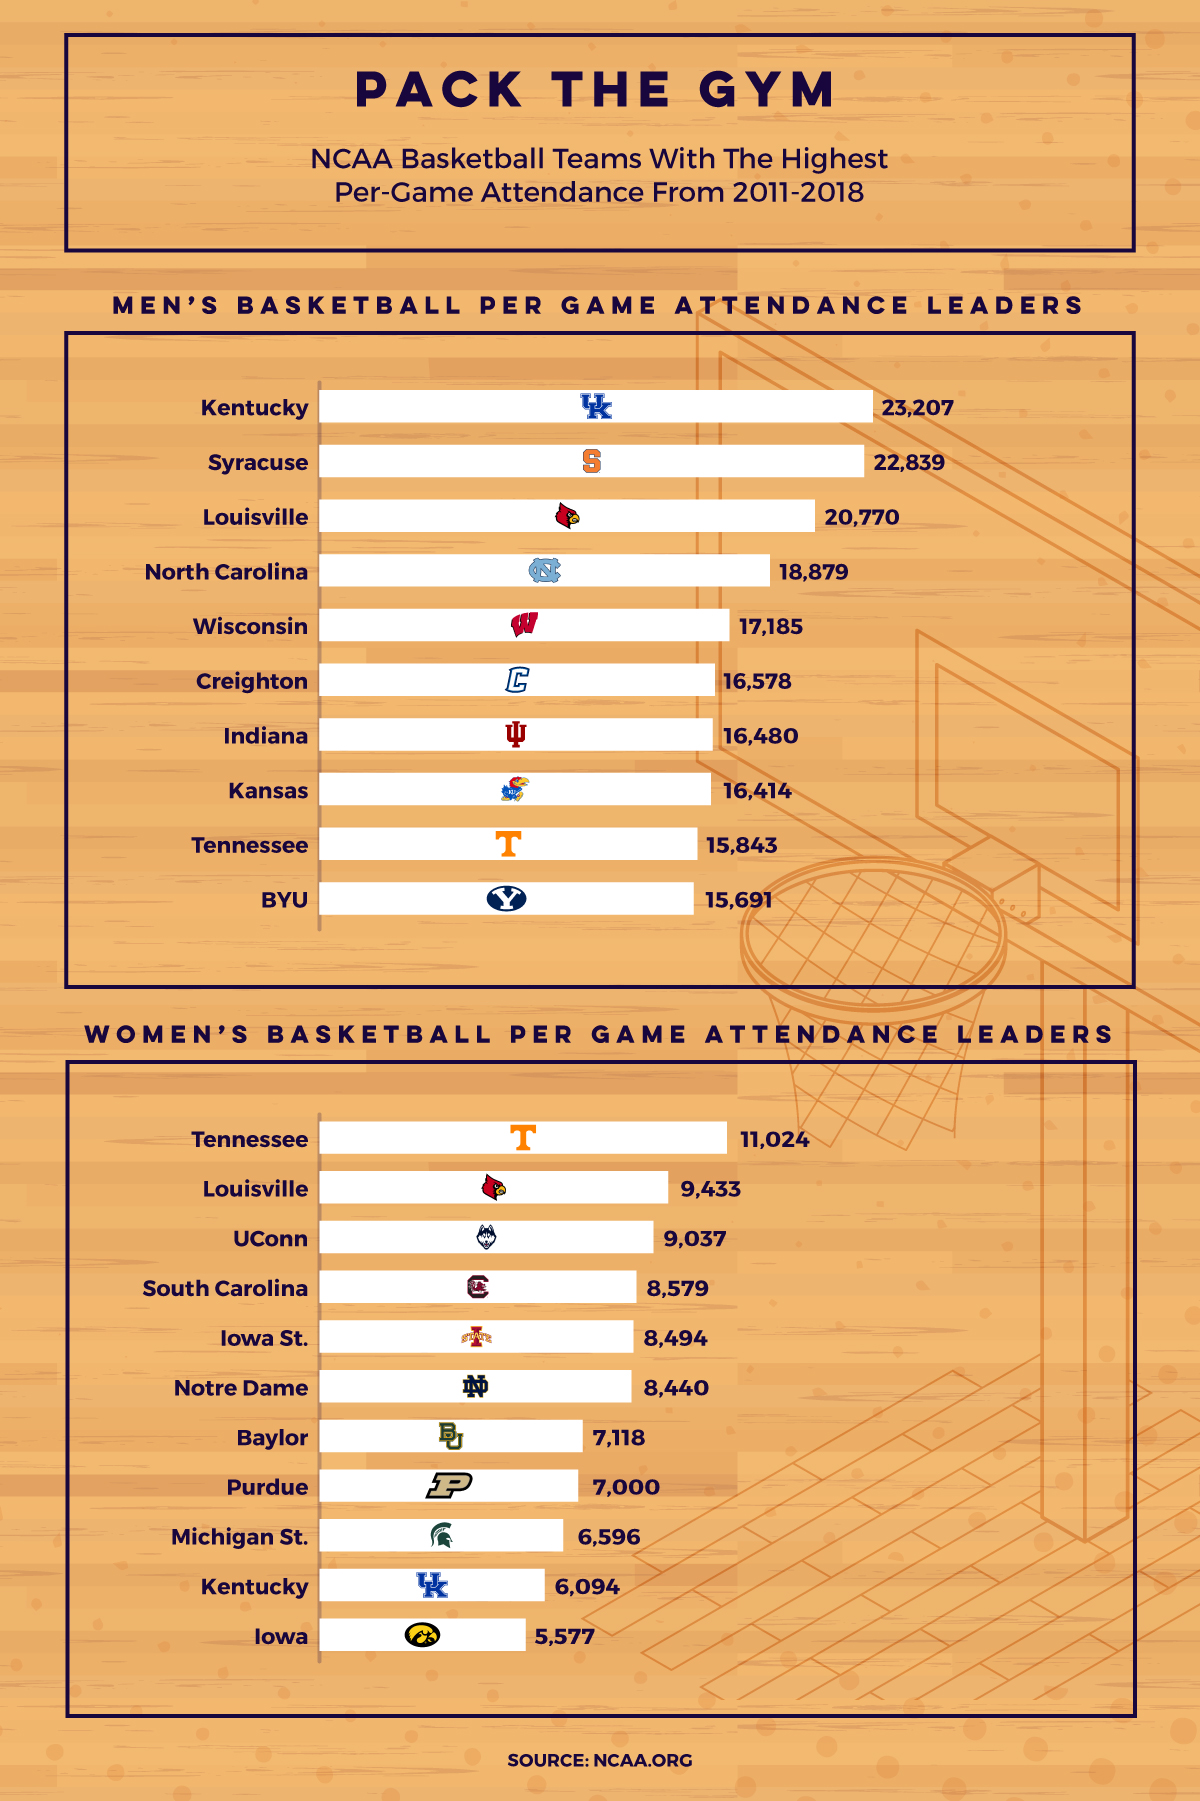 Basketball teams with the highest attendance